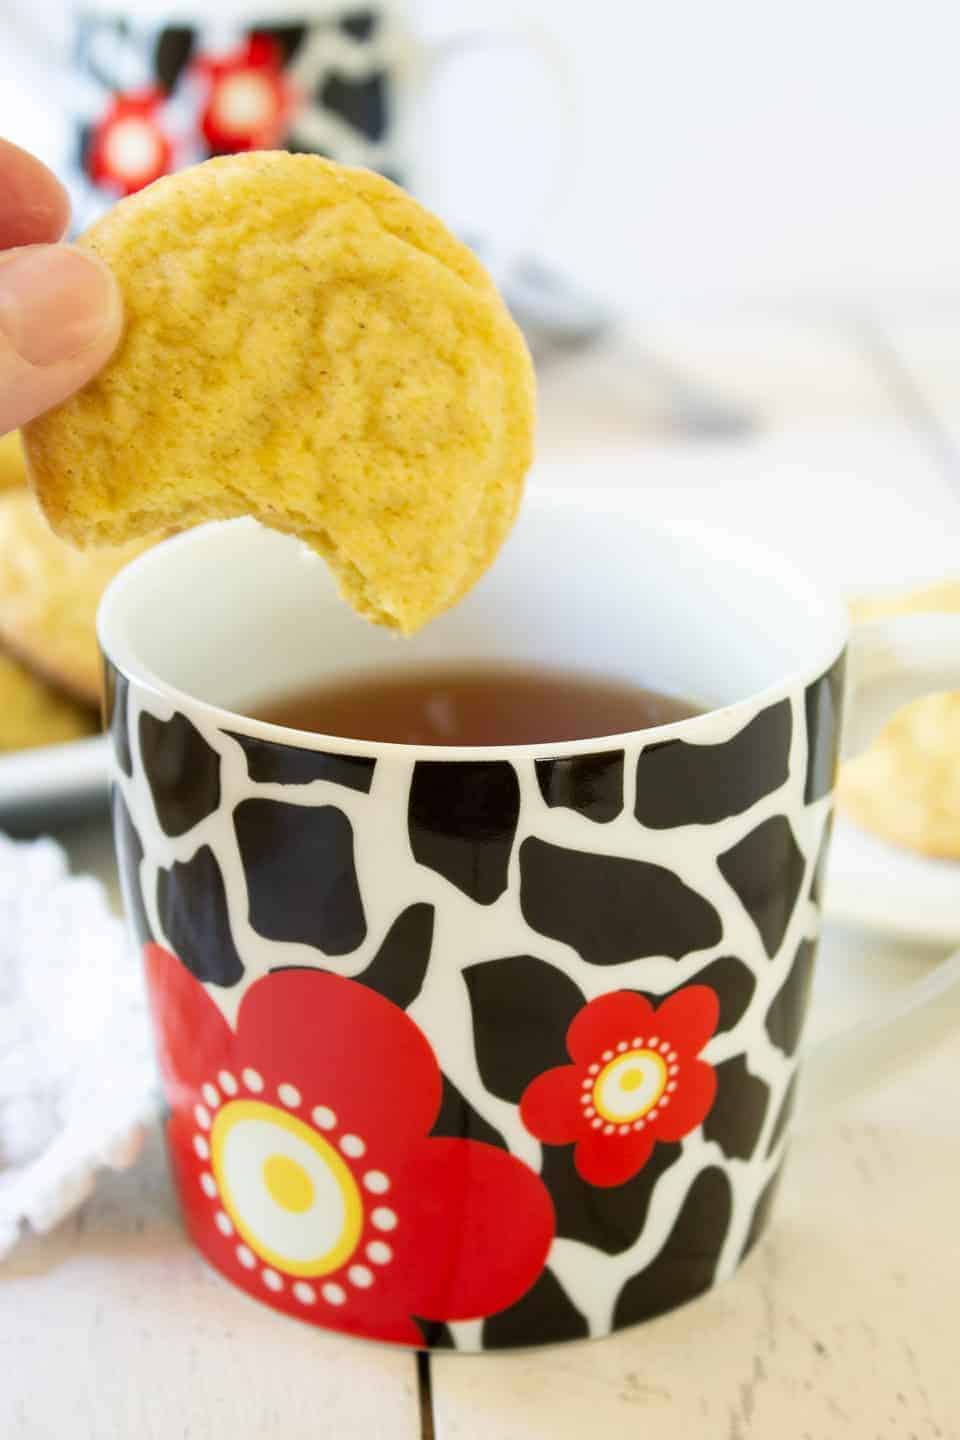 A cookie with a bite out of it being dipped into a cup of tea.